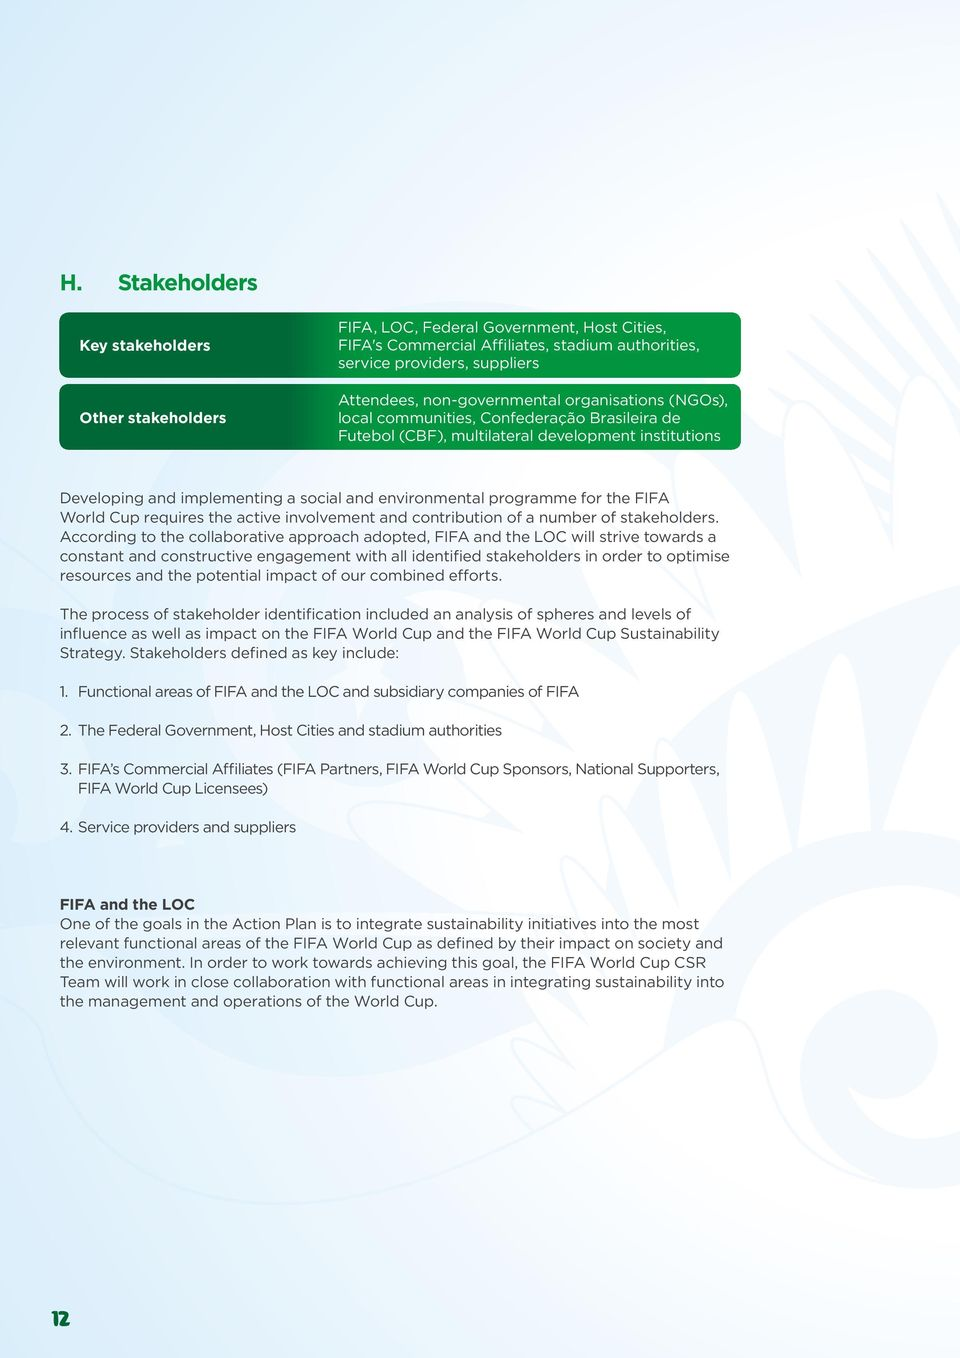 programme for the FIFA World Cup requires the active involvement and contribution of a number of stakeholders.